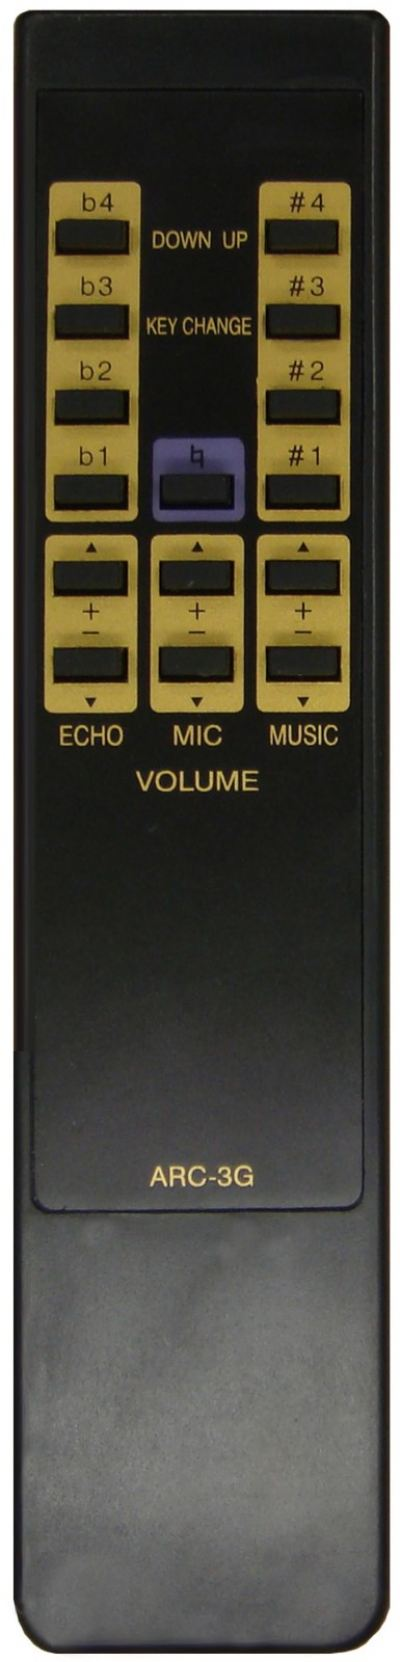 BMB KTV AMPLIFIER REMOTE CONTROL